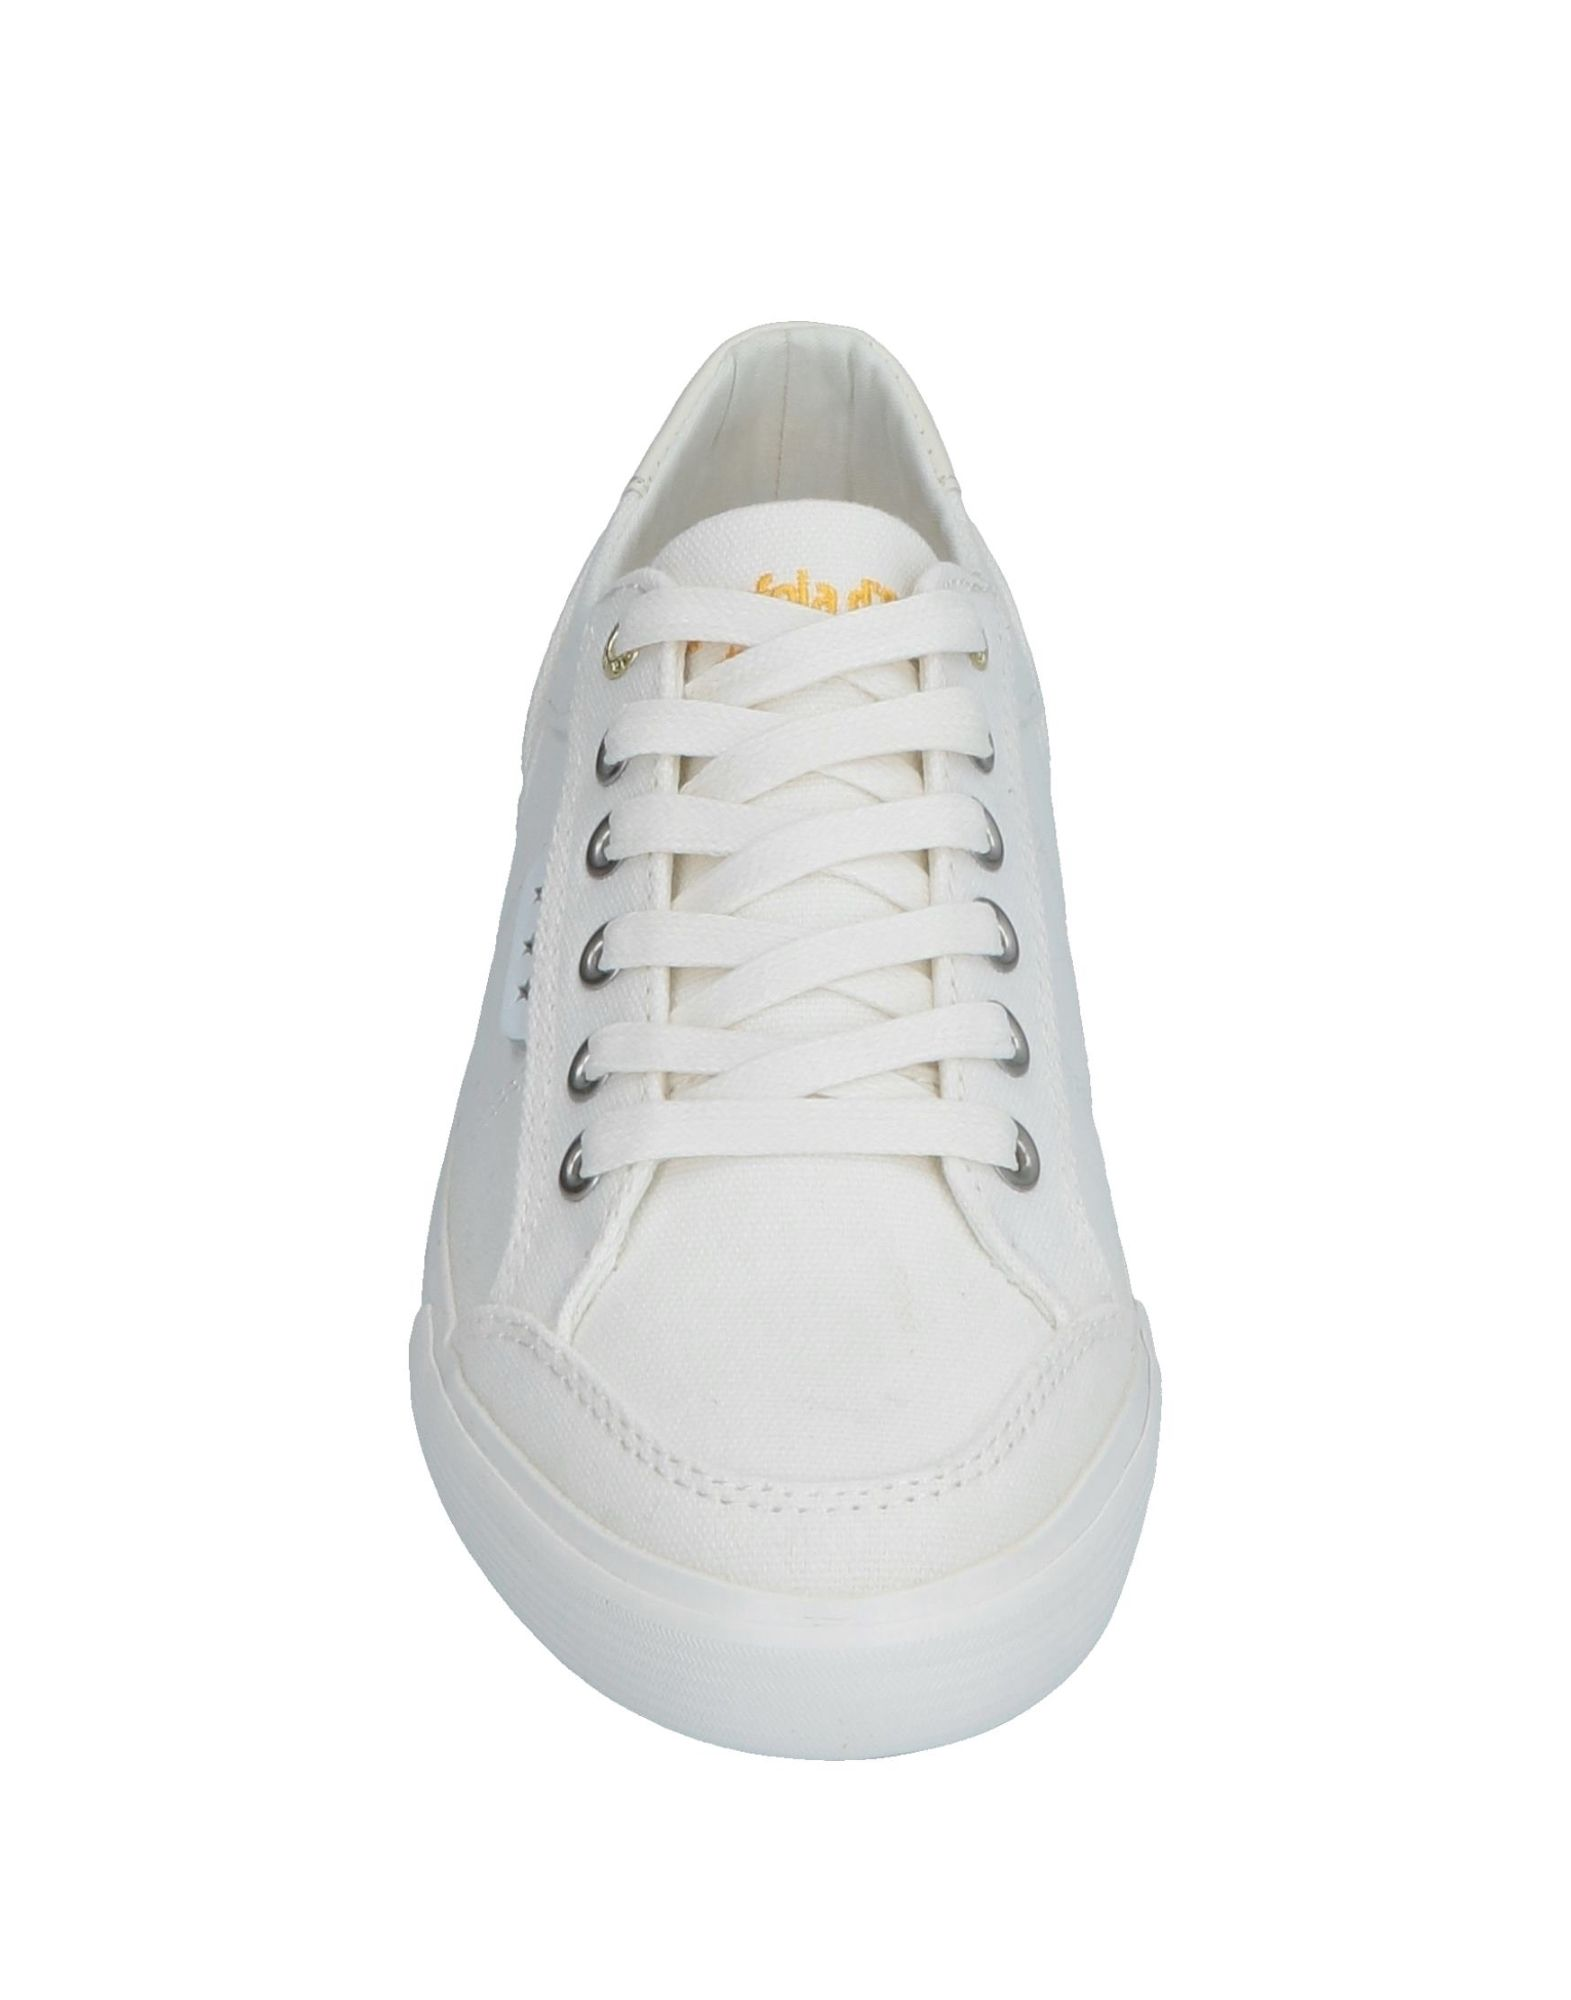 Pantofola D'oro Sneakers - - - Women Pantofola D'oro Sneakers online on  United Kingdom - 11575909SV 8a4e42